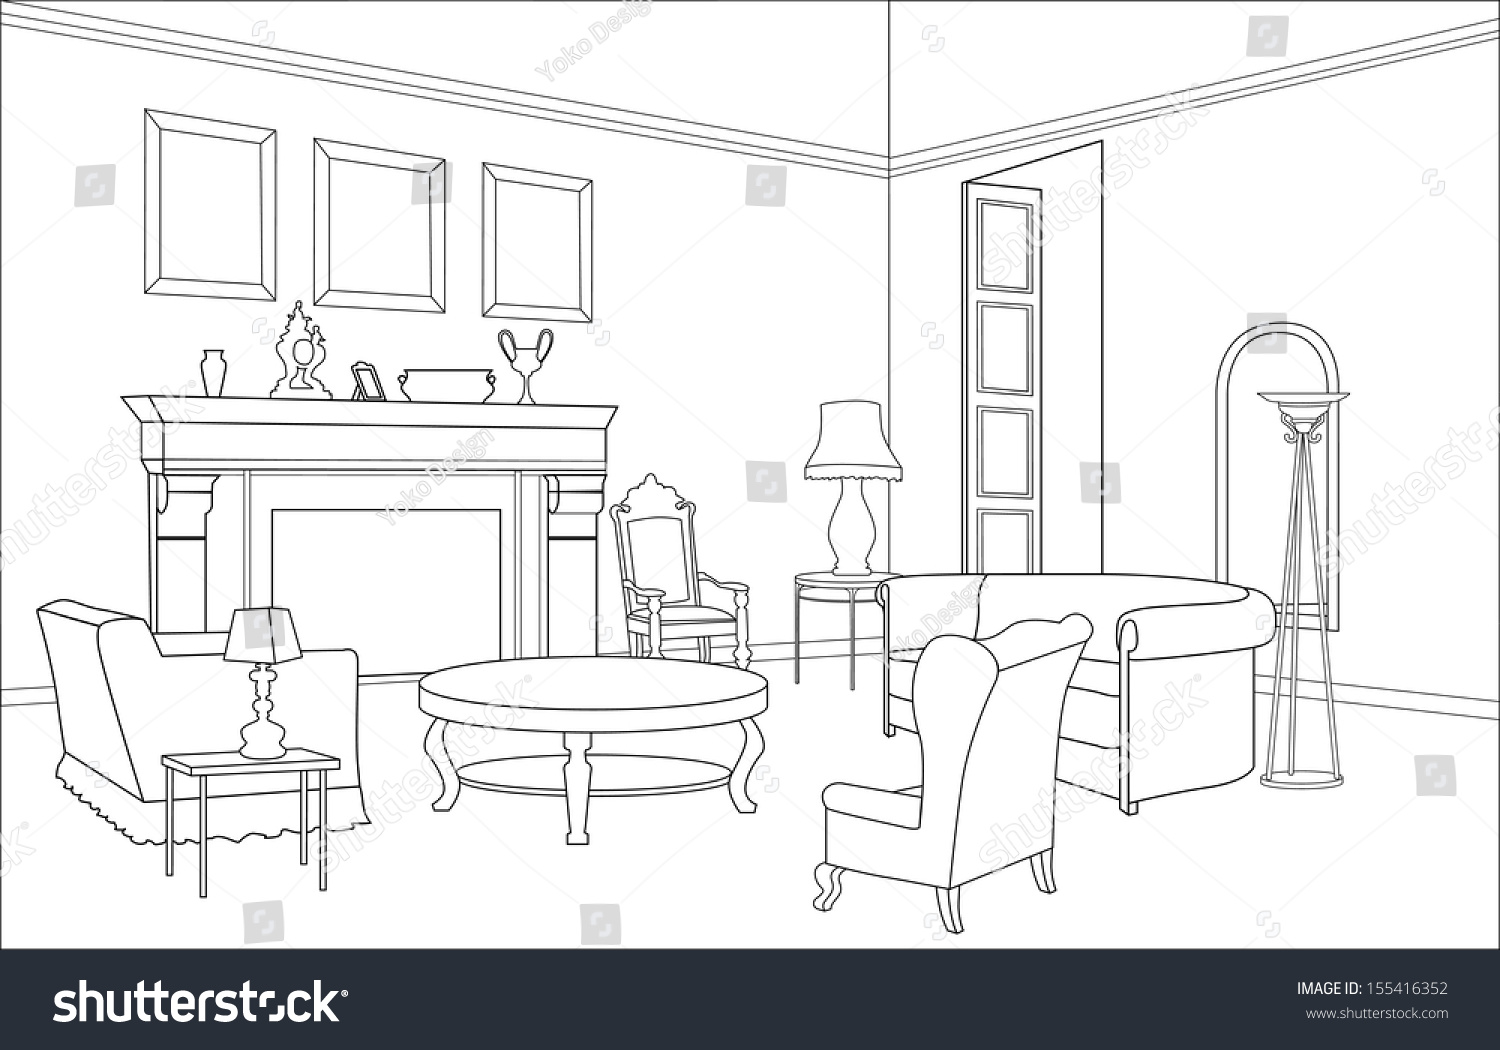 Online Drawing Room Of Drawing Room Editable Vector Illustration Of An Outline